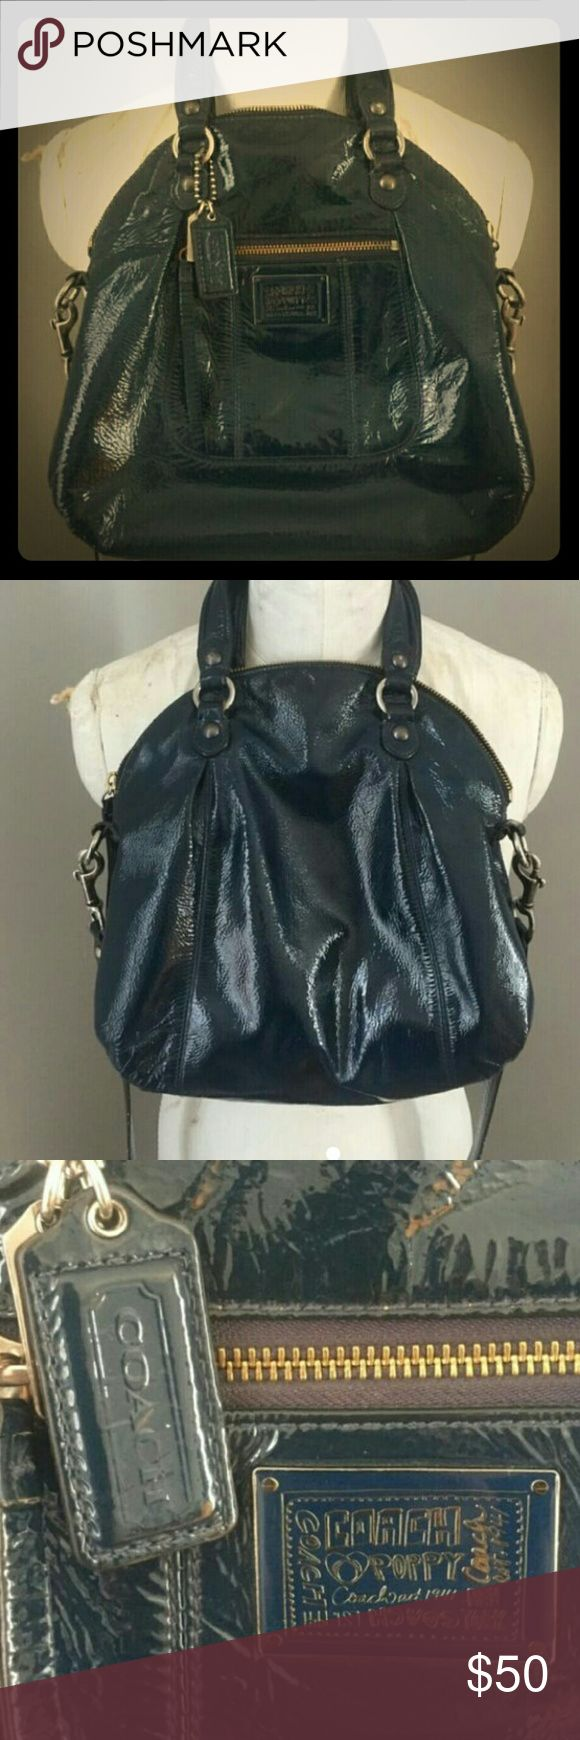 """Coach Poppy patent leather crossbody Authentic Coach Poppy navy bowling bag. 3 interior pockets, one with zip closure. 12"""" W x 11"""" H. Crossbody strap can be removed - 45"""" in length. Three minor defaults: 1. The zipper has been replaced. I don't know if it's the way that I zip but the teeth are ever so slightly detached from the top (about 1cm but still zips shut). 2. The bottom of the bag has a couple pen stains- see picture 3. 3: the pull tabs on the zipper are separating. Price dropped for…"""